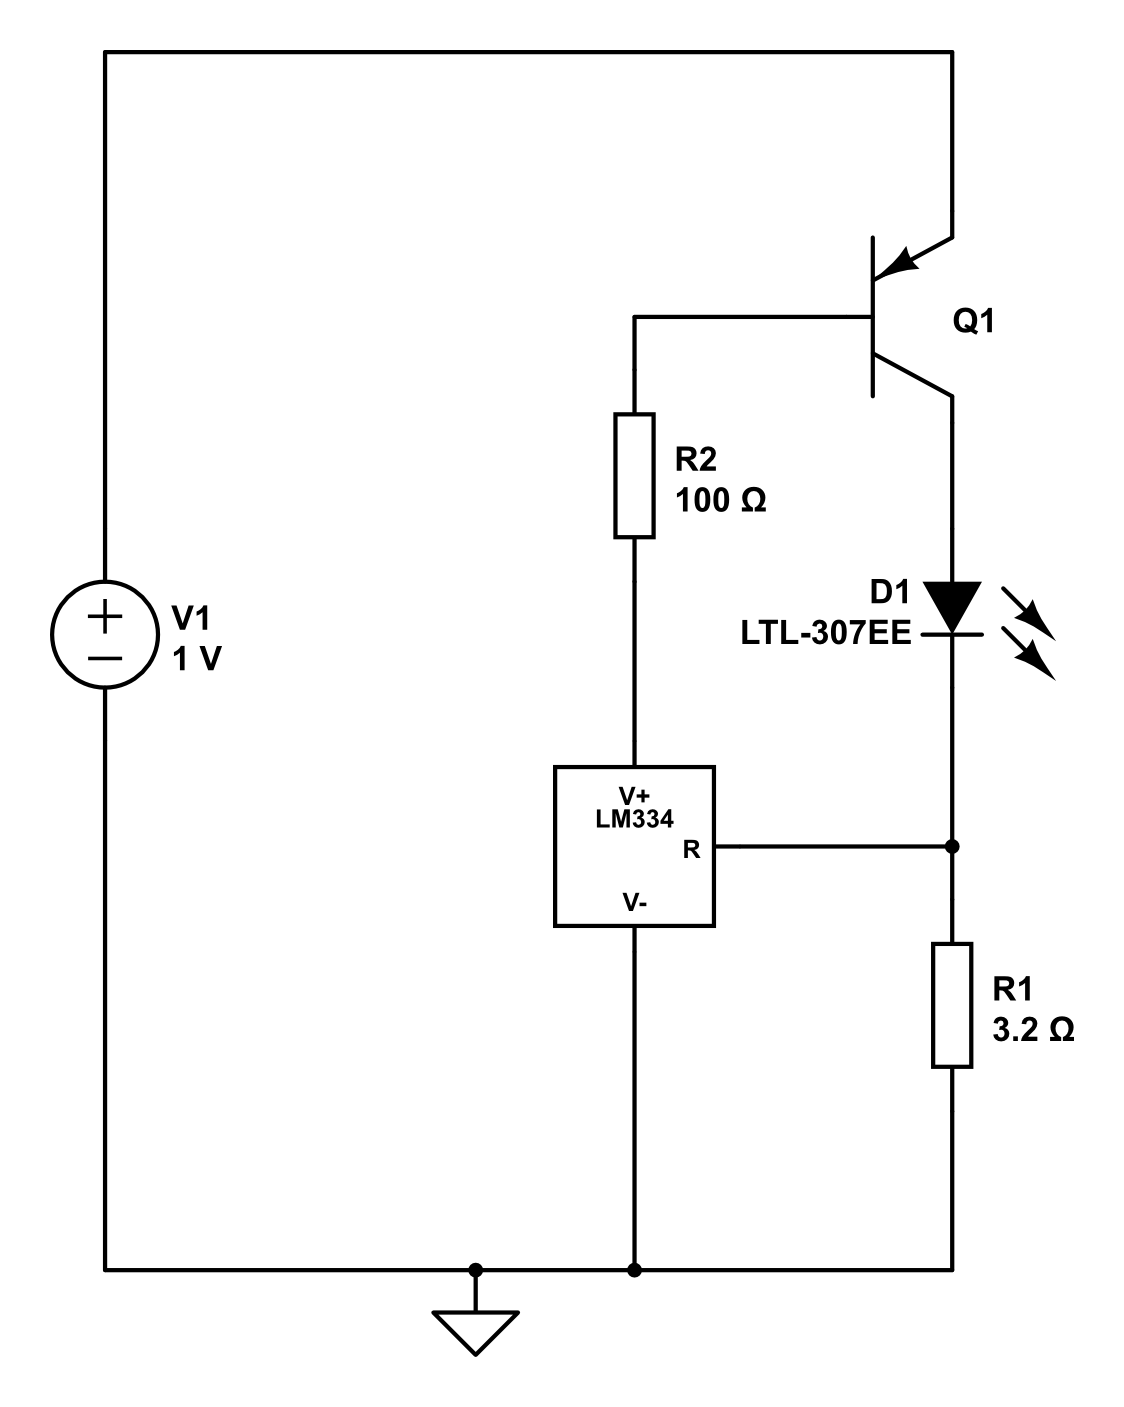 Toms Projects A Beginners Guide To Driving Leds Part 3 Lm317 Led Driver Circuit Basically The Voltage Over R1 Is Kept At 64 Mv By Lm334 It Does That Setting Current Into V